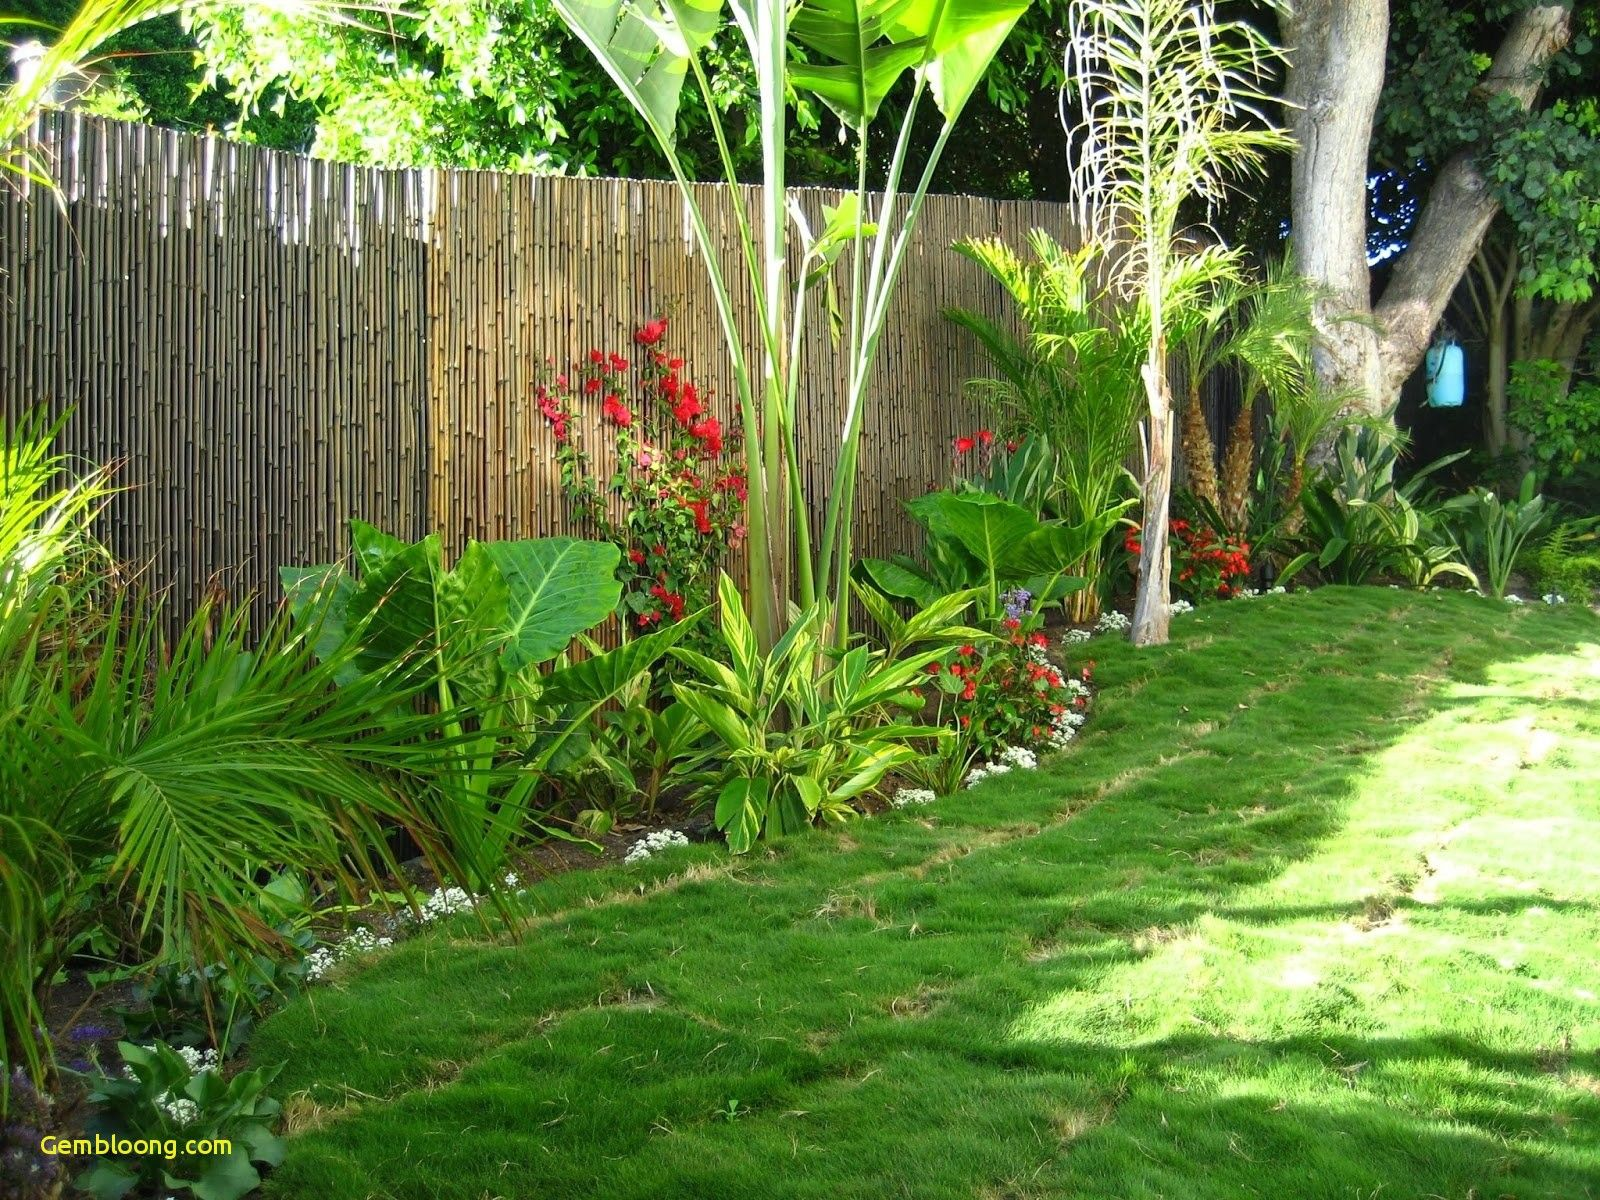 Exterior Design Garden Ideas With Plants Borders And Colorful Pretty